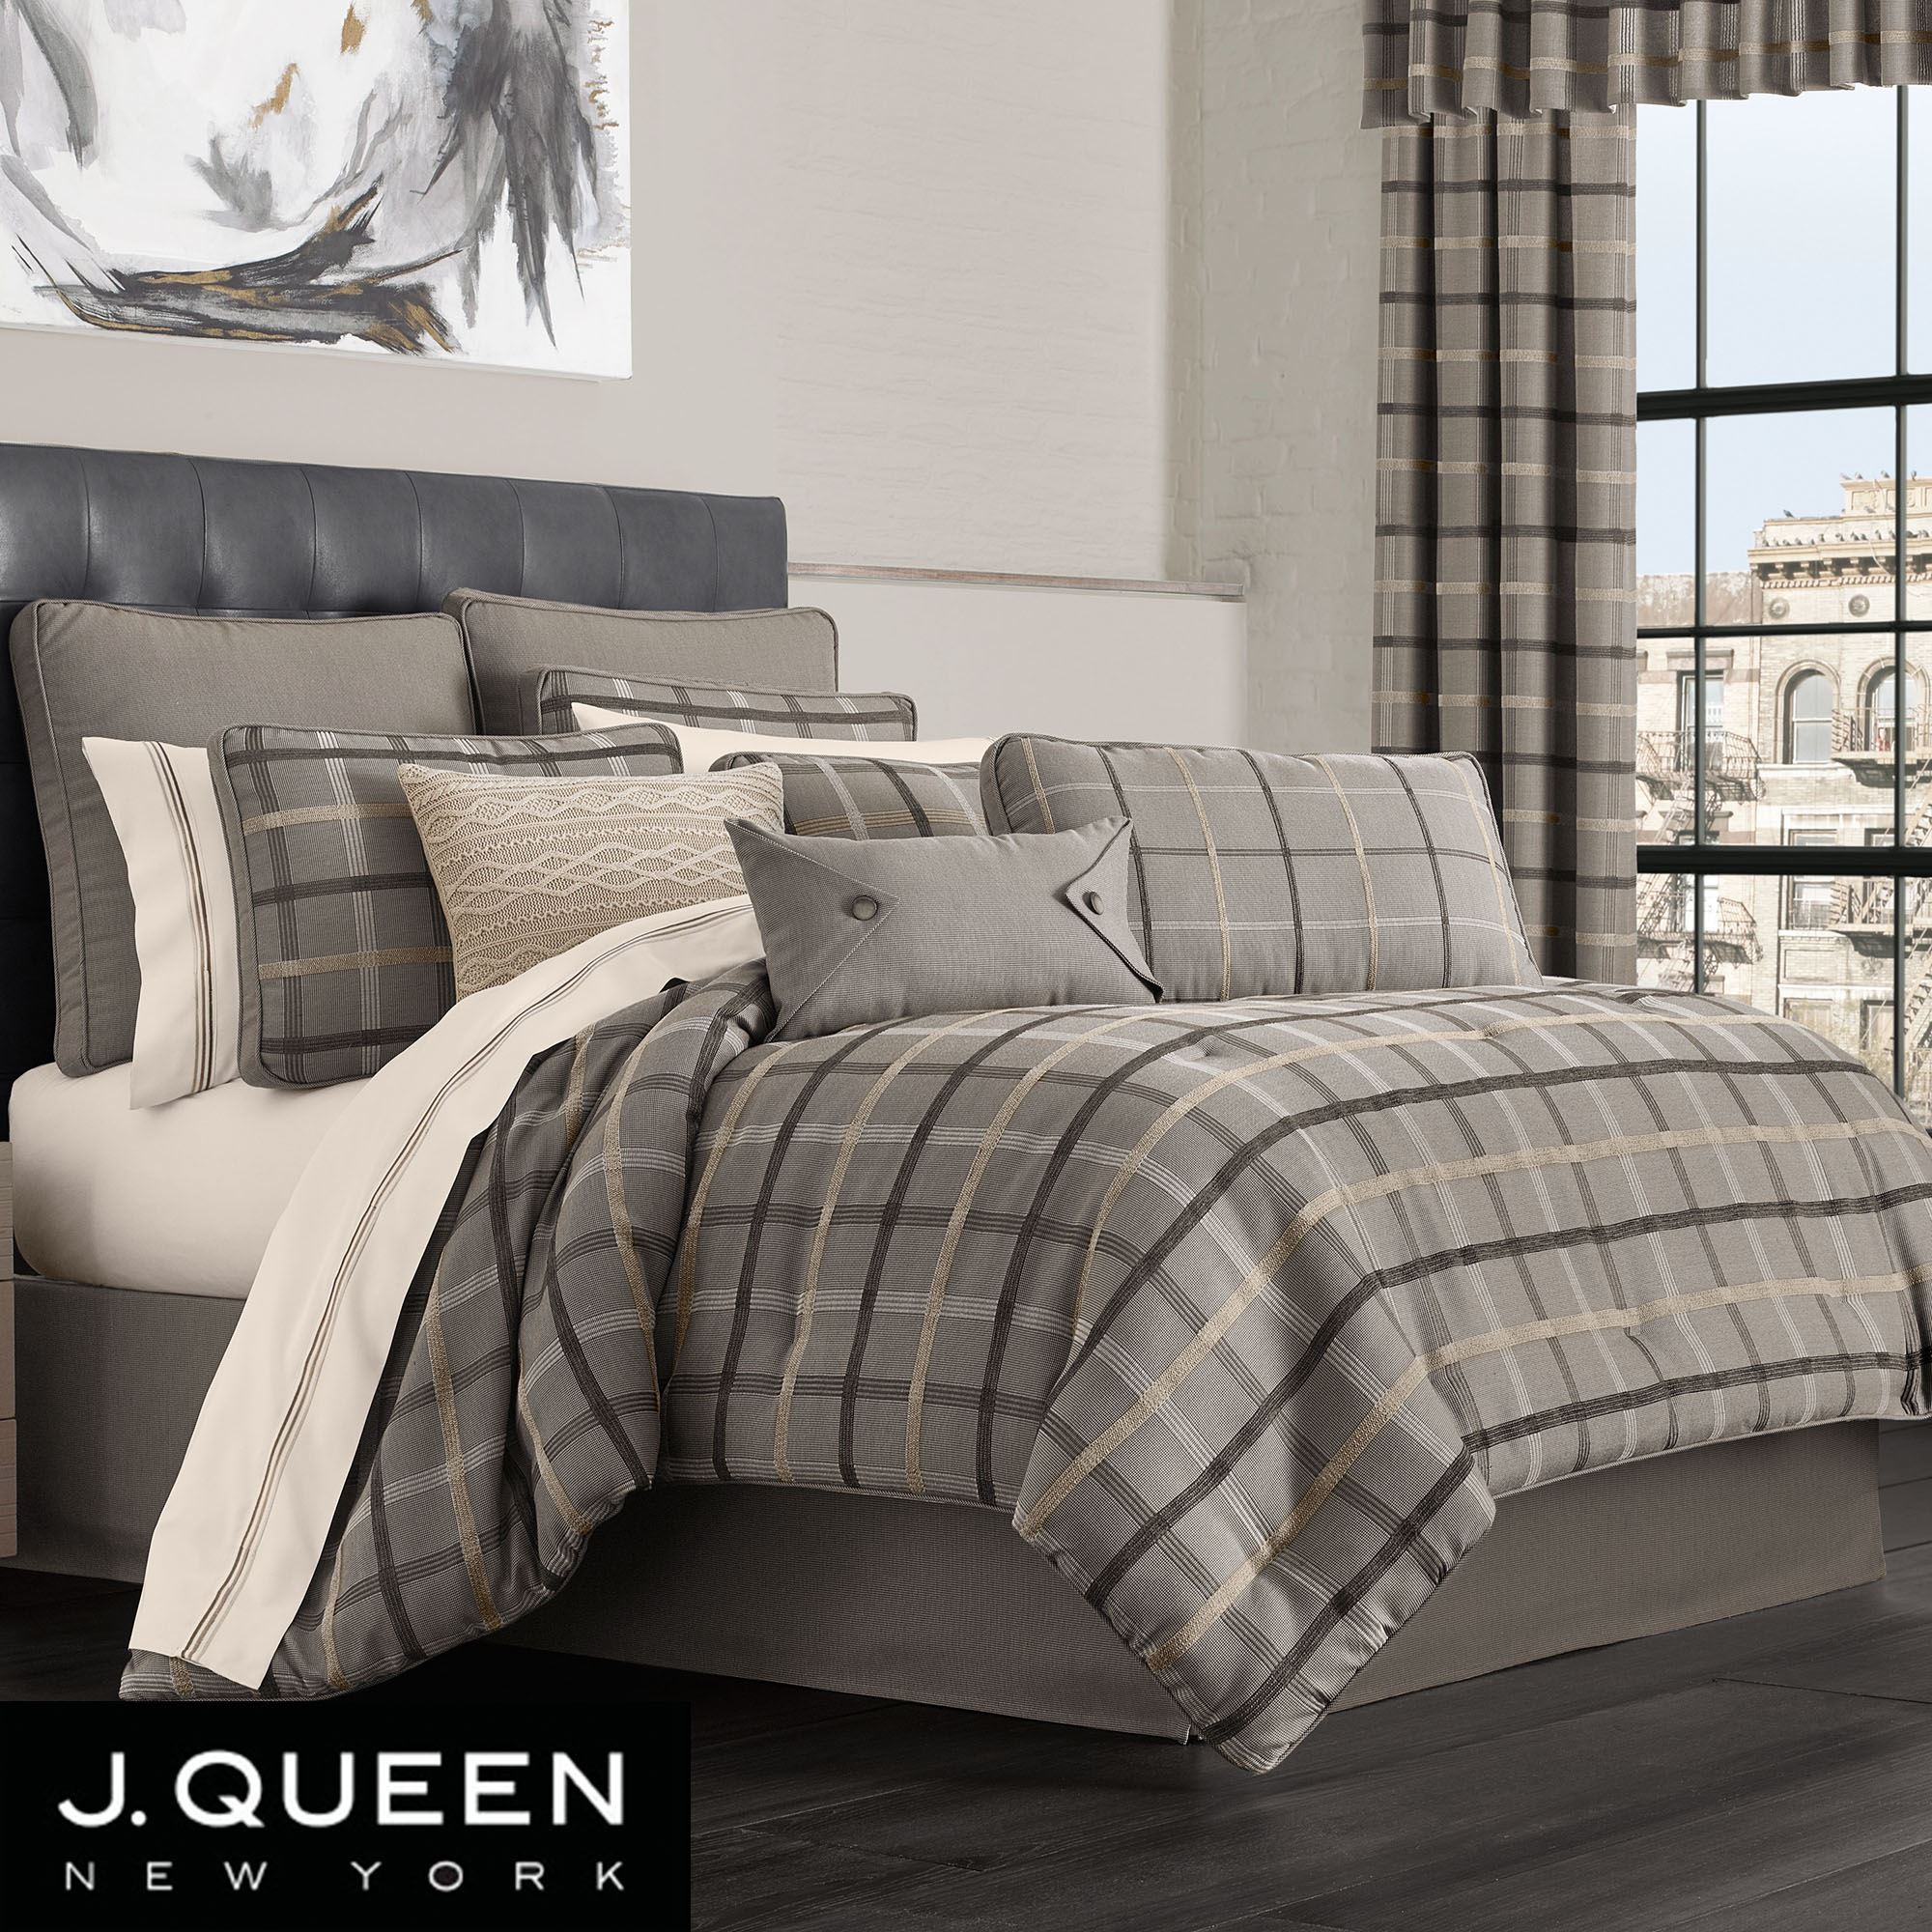 Sutton Gray Plaid Comforter Bedding By J Queen New York